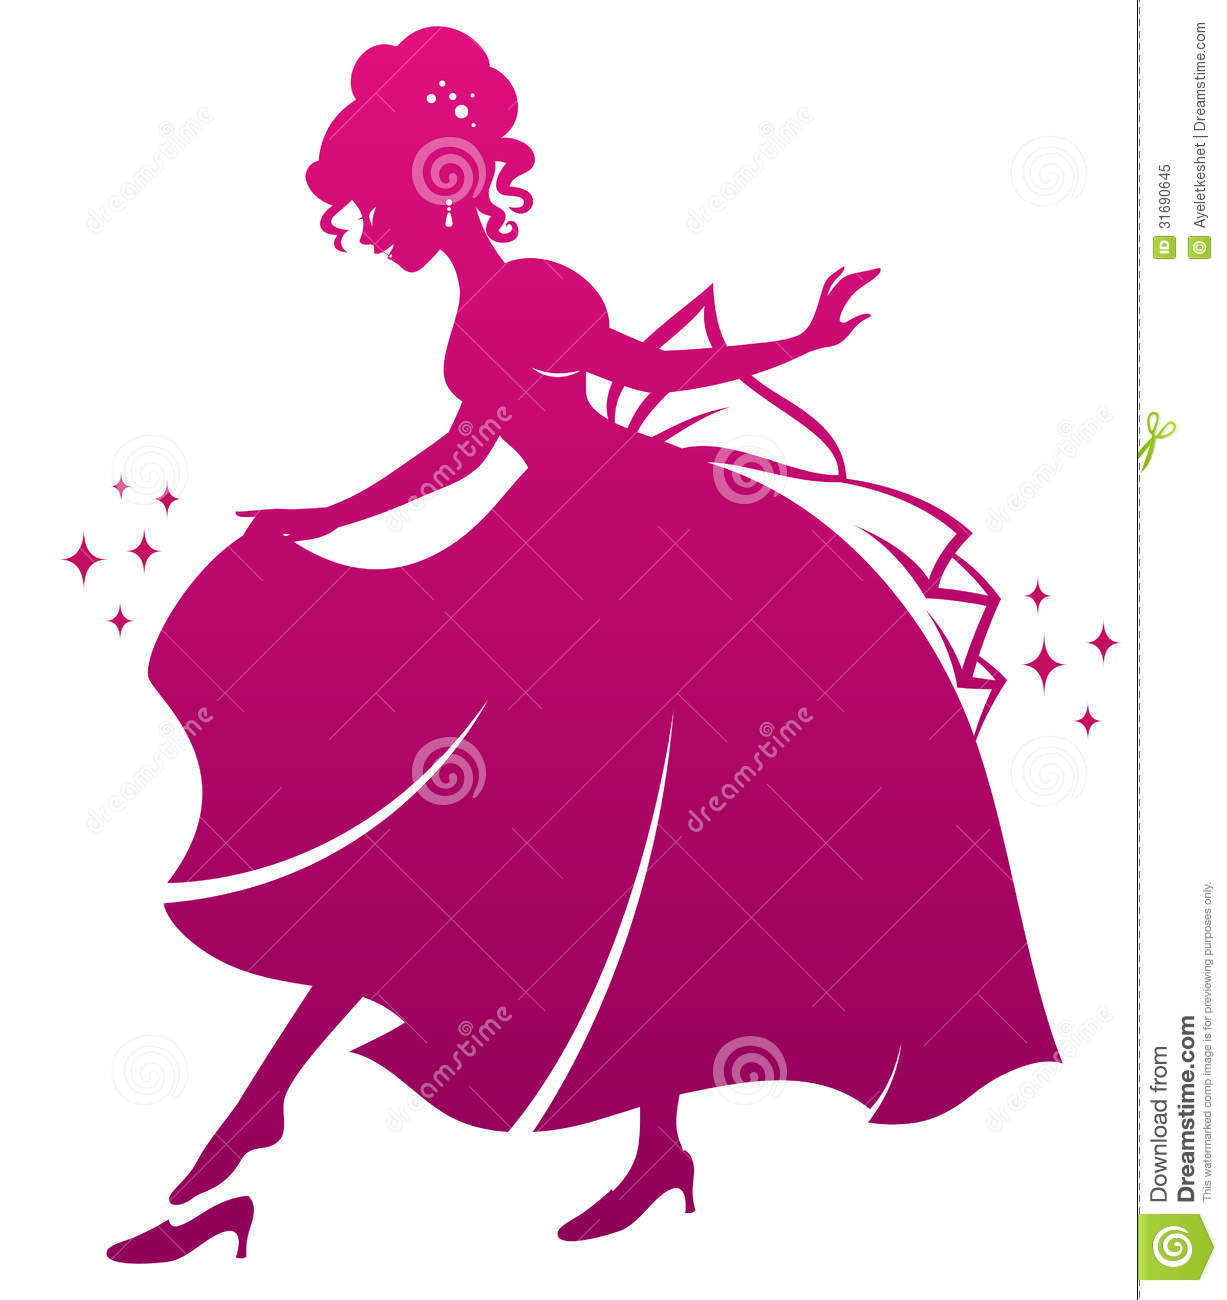 Princess And Her Shoe Royalty Free Stock Photo   Image  31690645